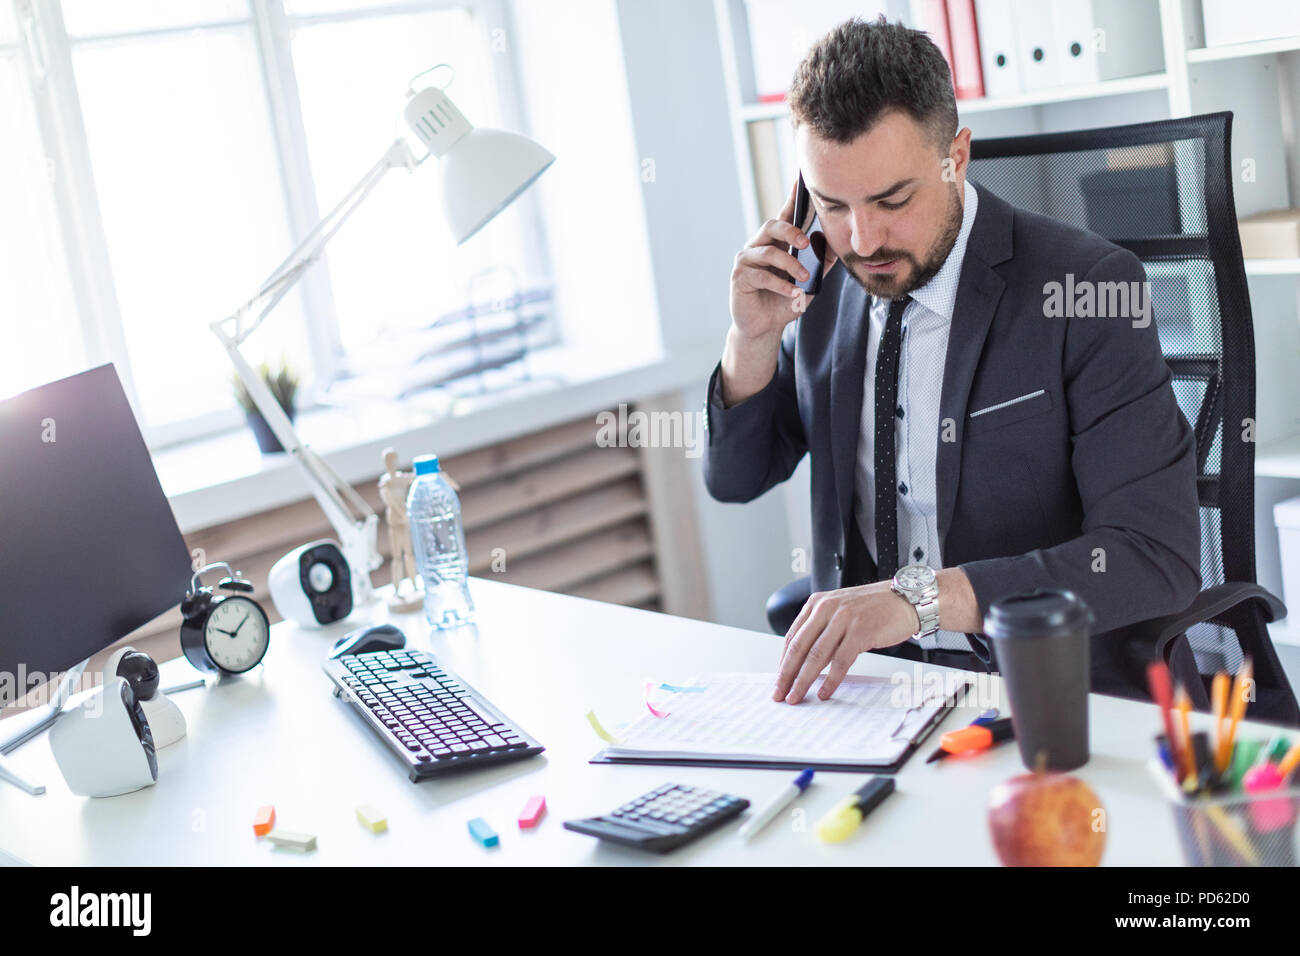 A man is sitting in the office at the table, talking on the phone and flipping through documents. - Stock Image